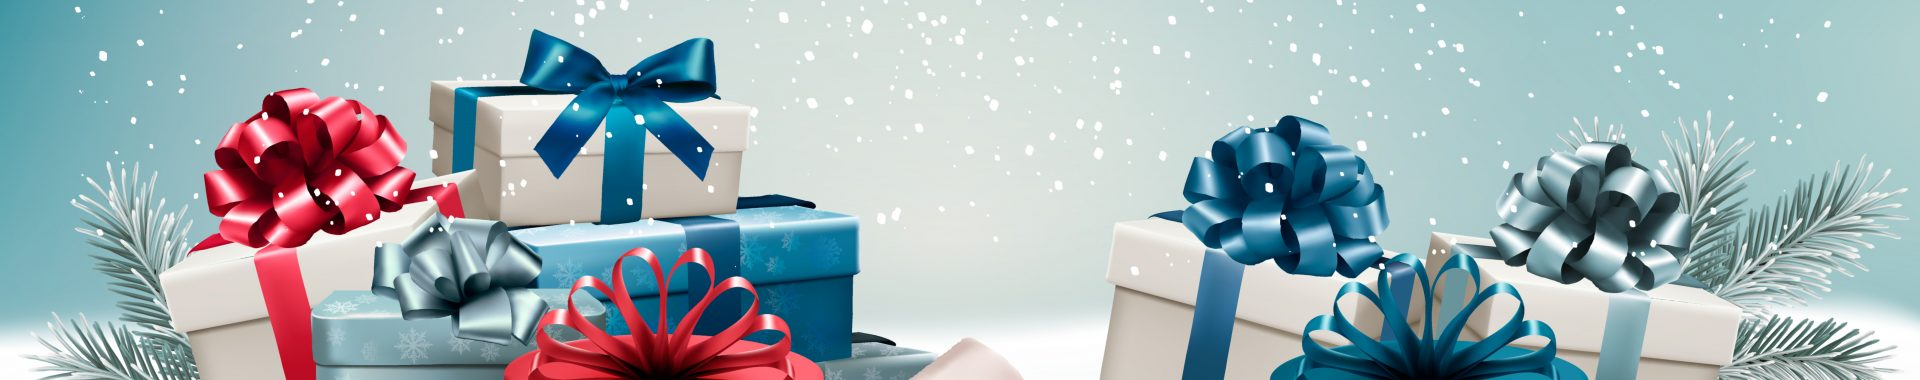 banner for xmas blogs